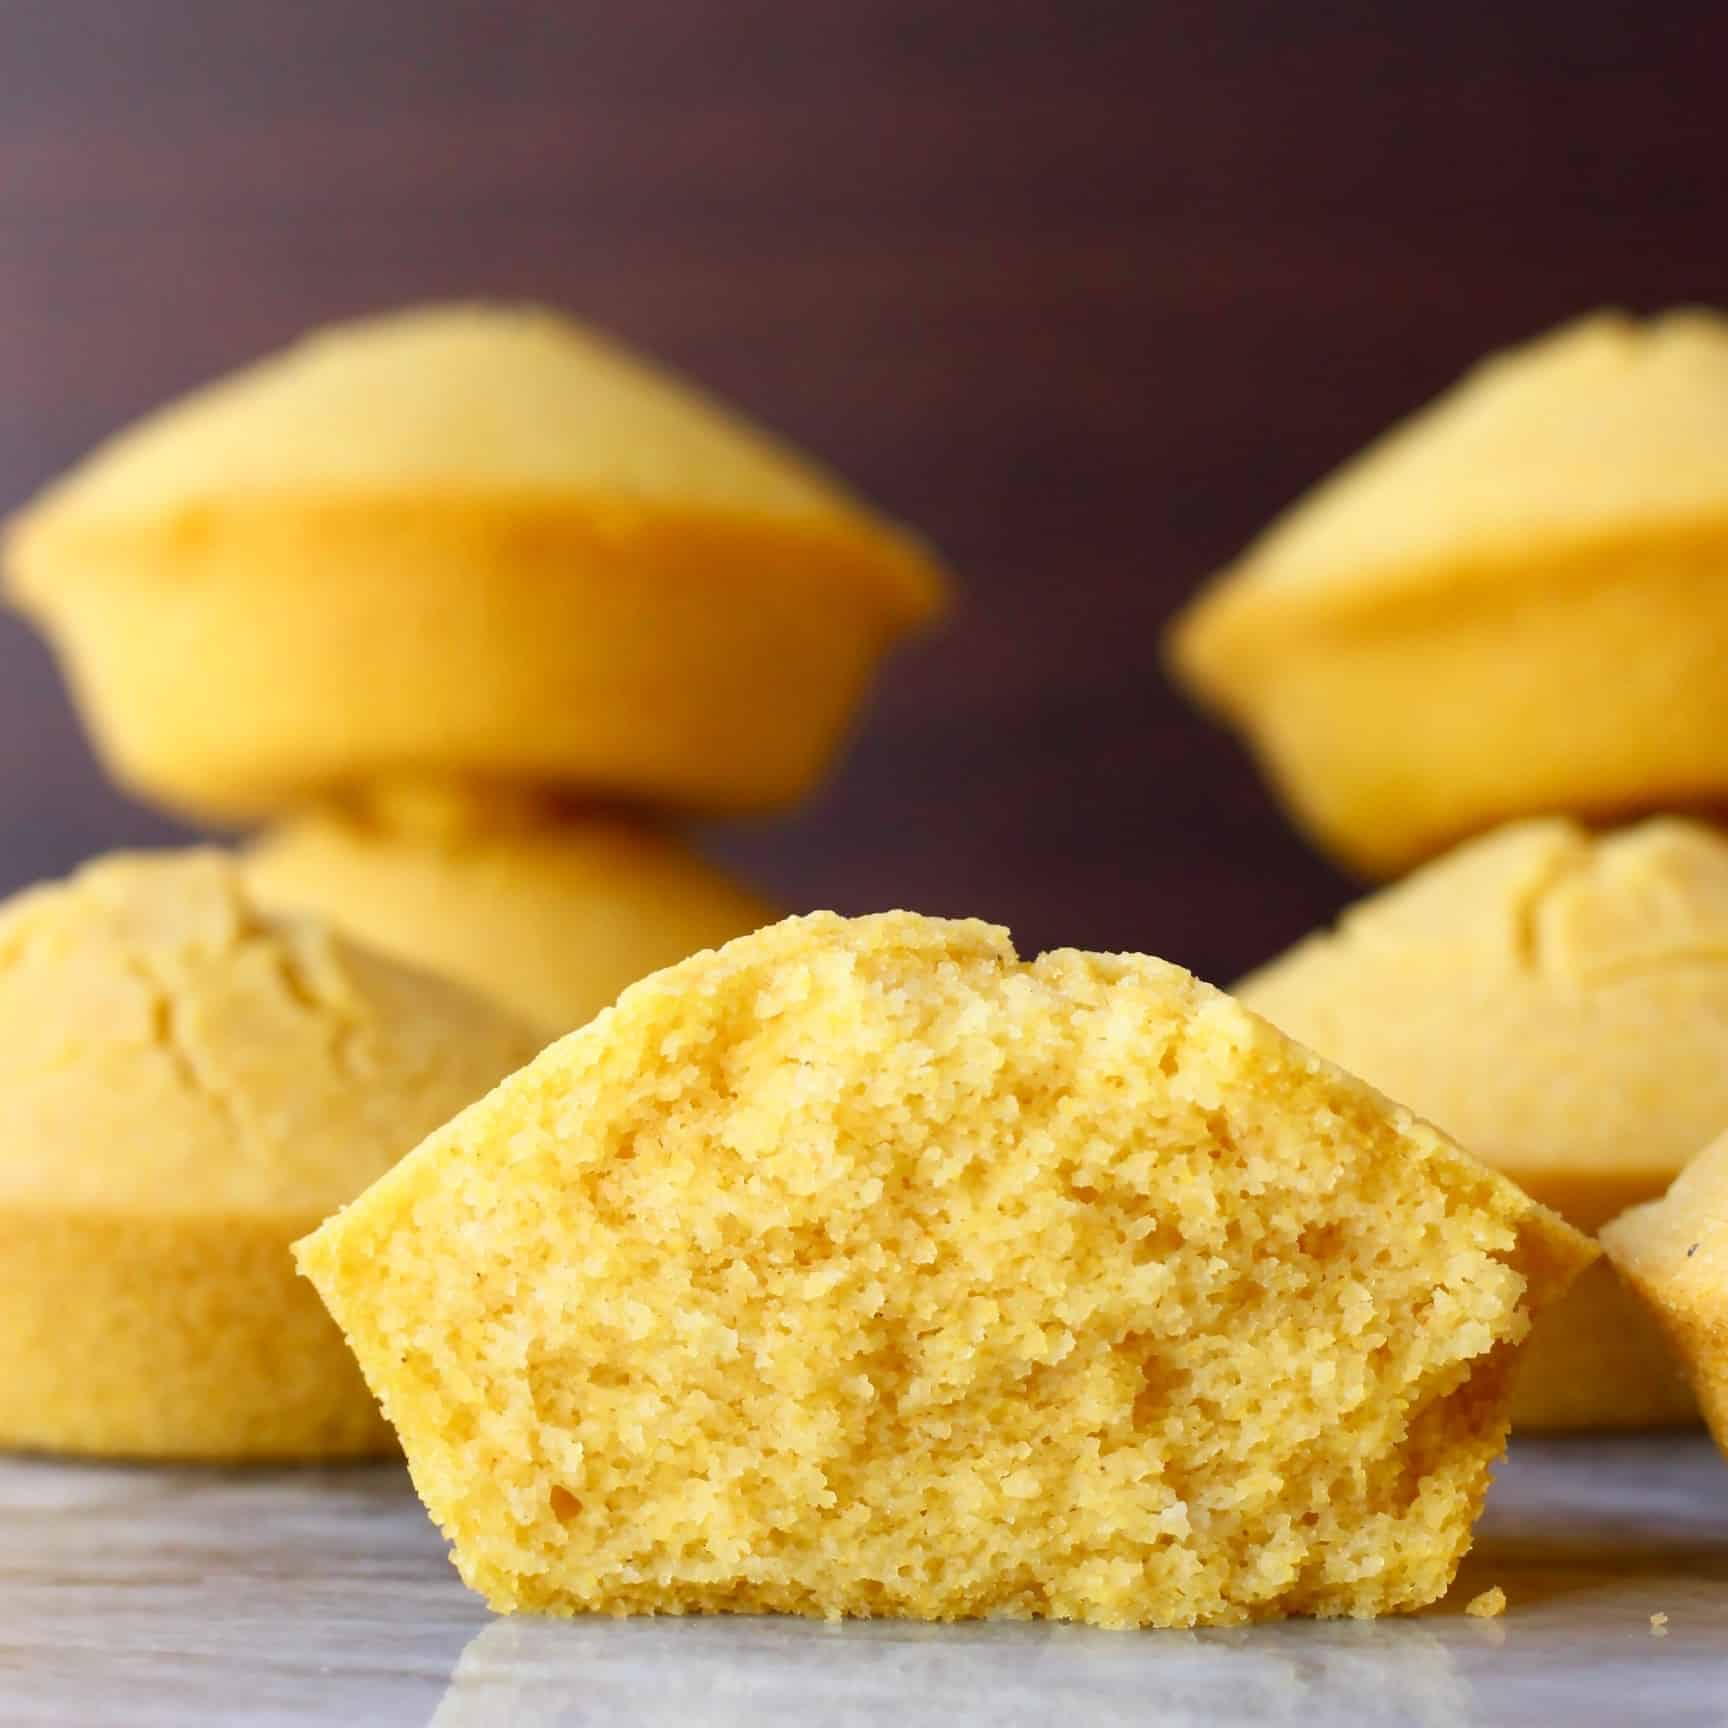 Six gluten-free vegan cornbread muffins with one cut in half on a marble slab against a dark brown background